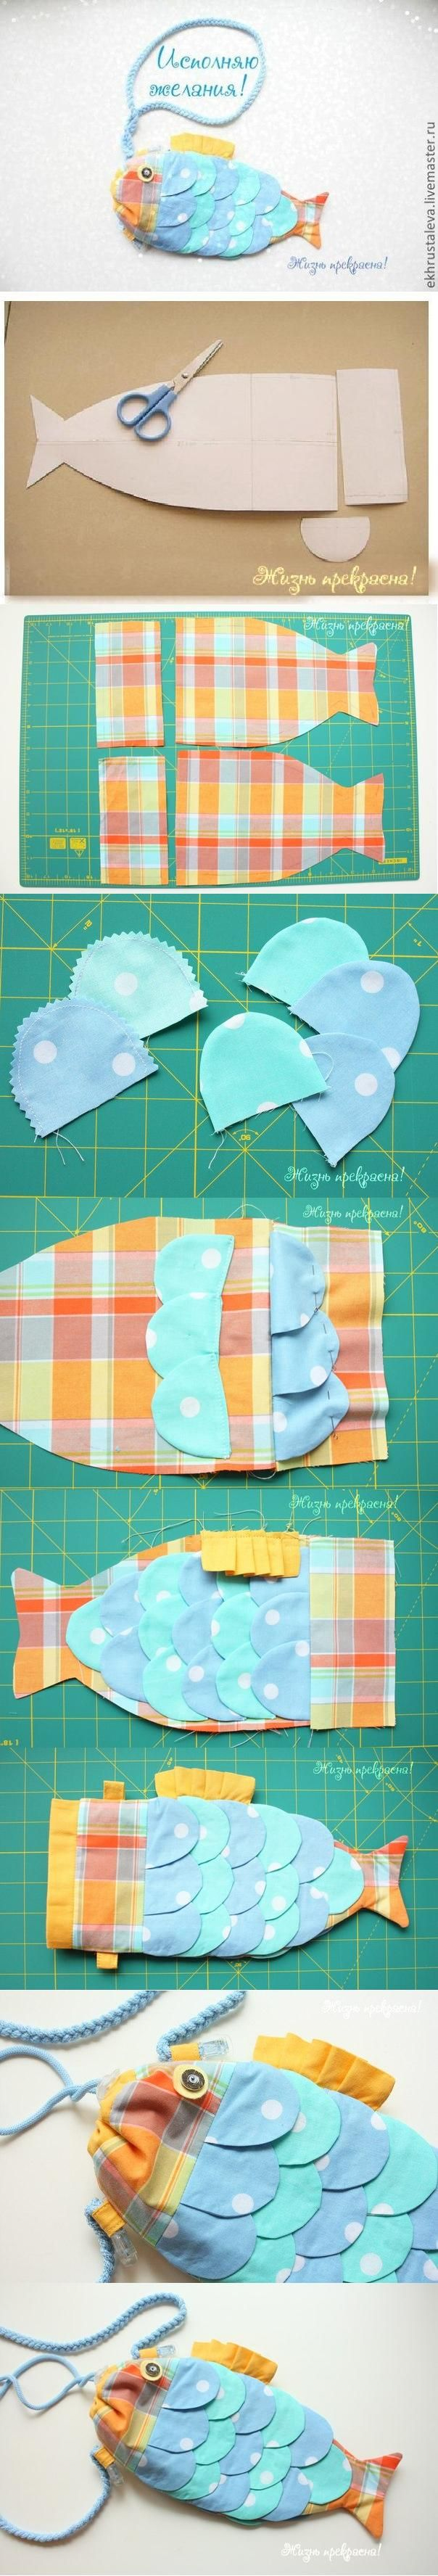 diy, diy projects, diy craft, handmade, diy ideas, diy children fish handbag - Folkvox - Imágenes que hablan de mí -